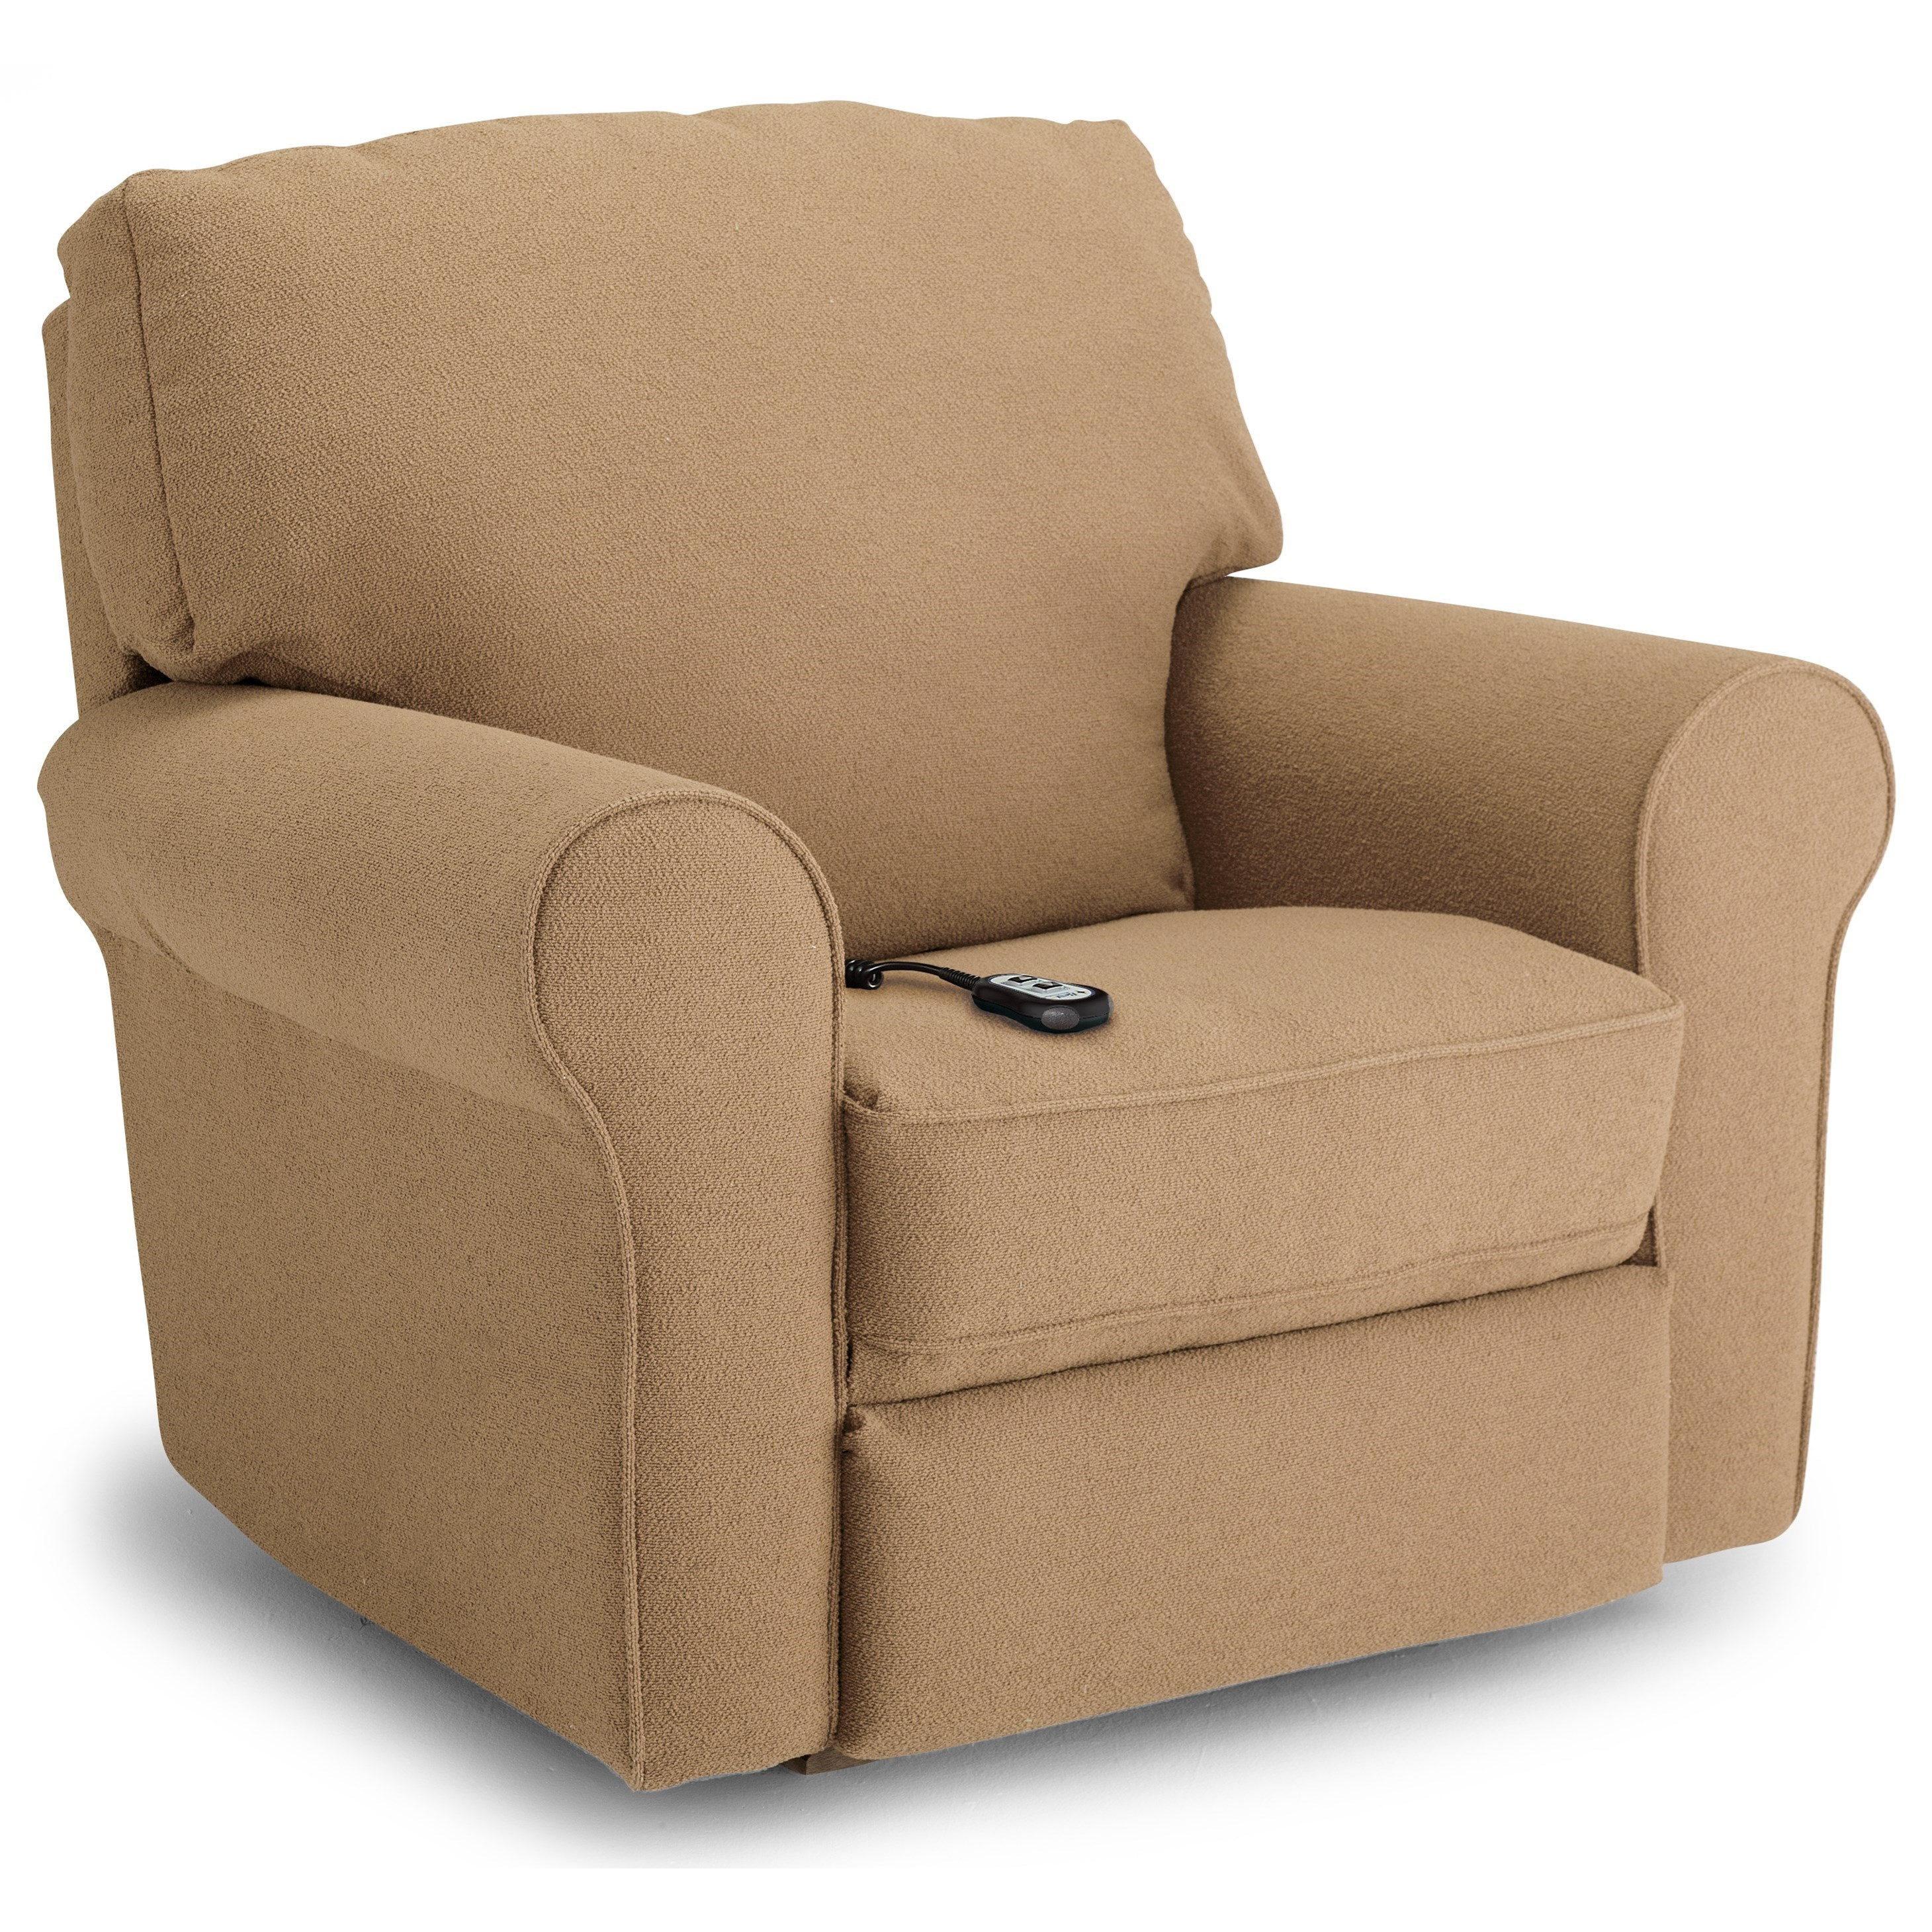 Best Home Furnishings Recliners - Medium Irvington Power Lift Recliner - Item Number: 5MW31